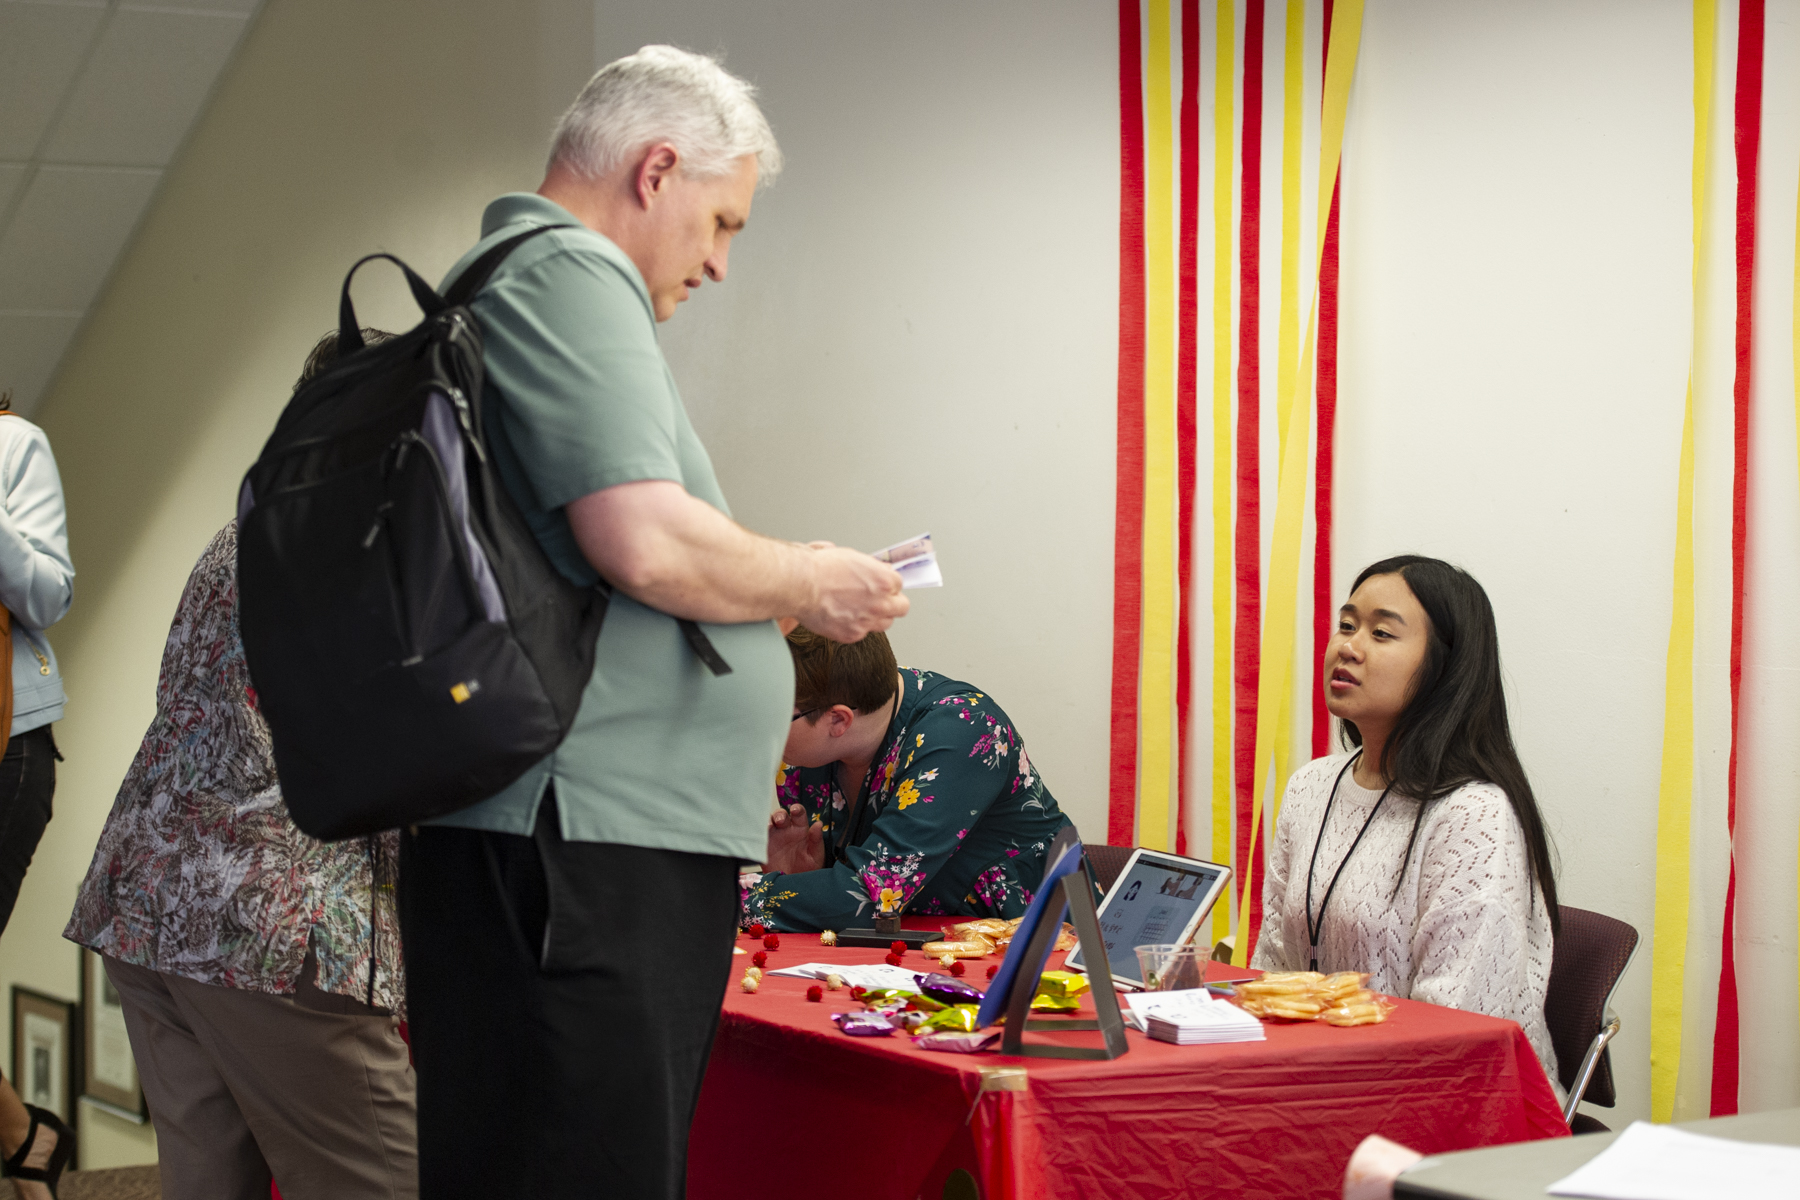 Teacher talking to a student at a booth displaying curriculum for K-12 students.